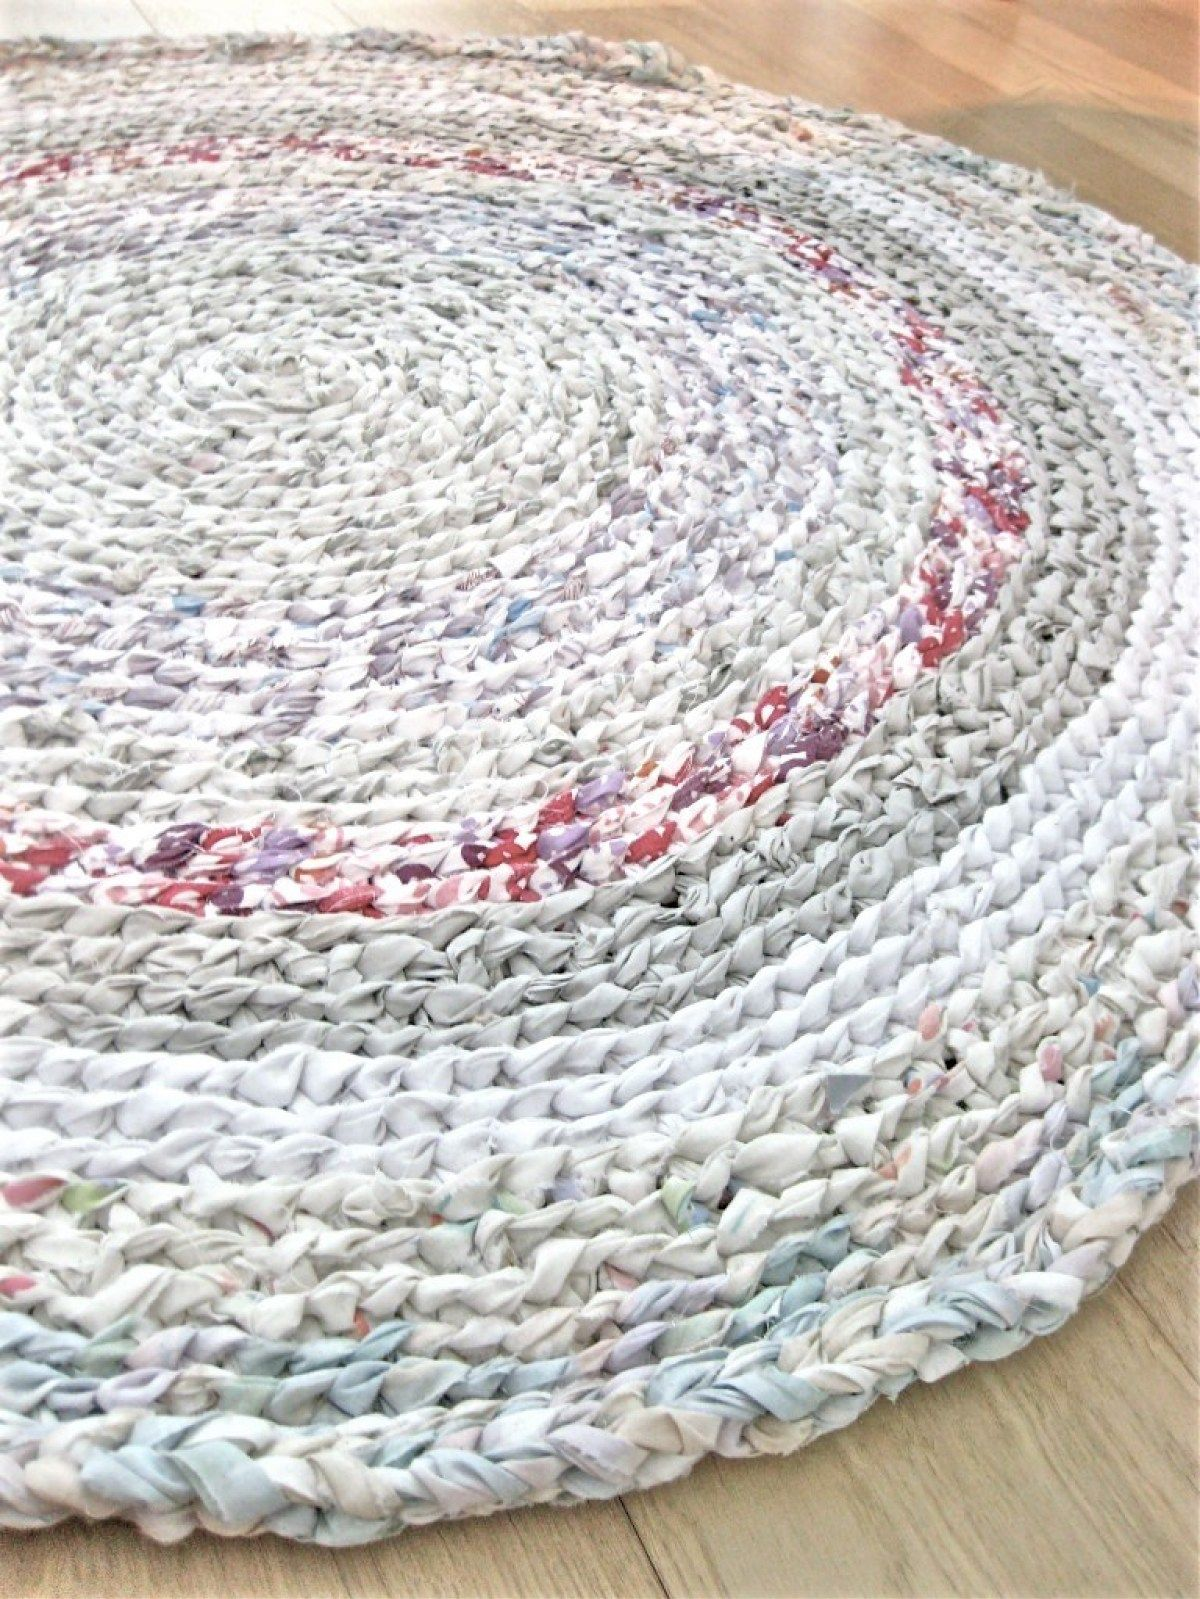 Rag Rug Made From Old Flat Sheets